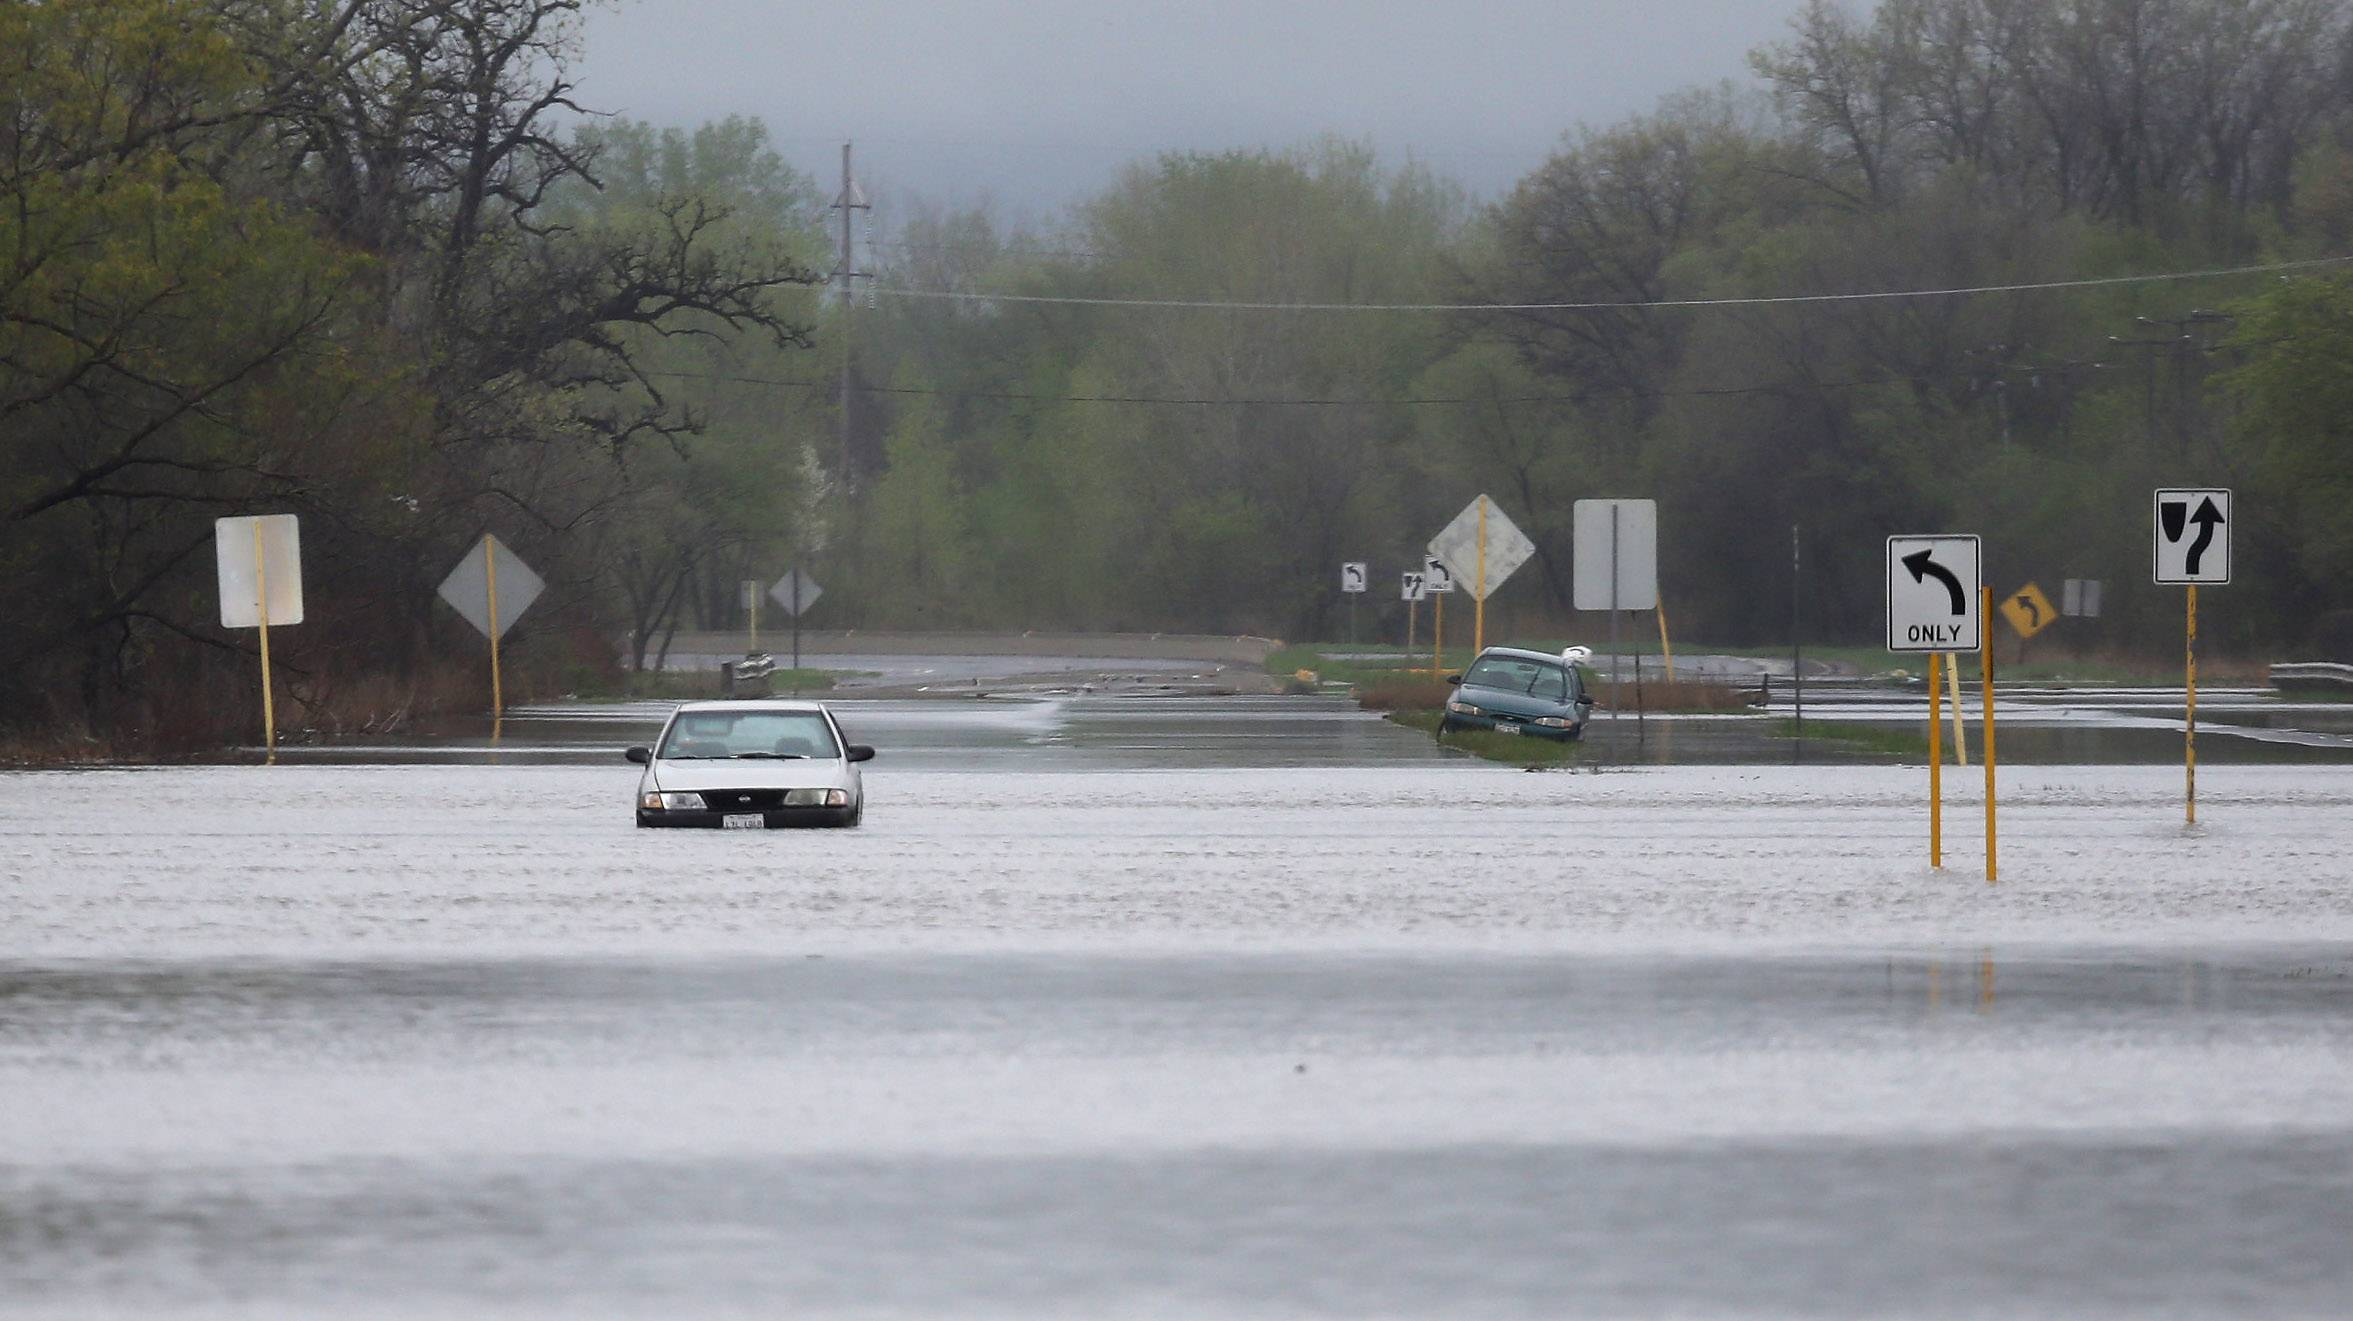 Cars were stranded in floodwaters on Route 41 south of Route 137 and the road was closed Tuesday morning due to flooding. Overnight storms caused area flooding and traffic problems in Lake County.